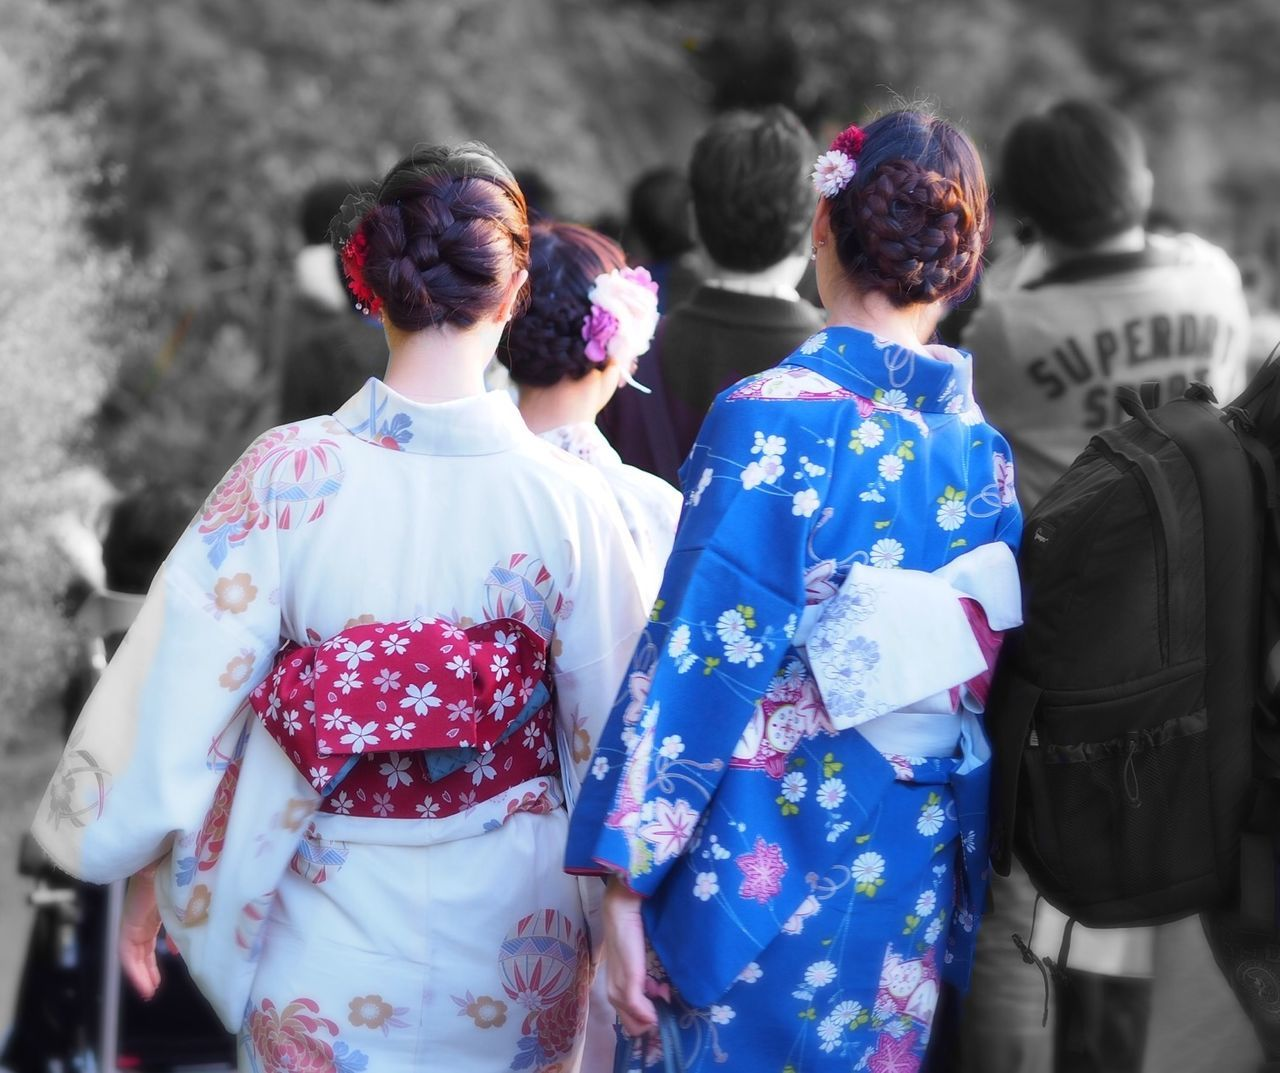 rear view, real people, traditional clothing, kimono, women, togetherness, celebration, day, outdoors, ceremony, men, groom, bride